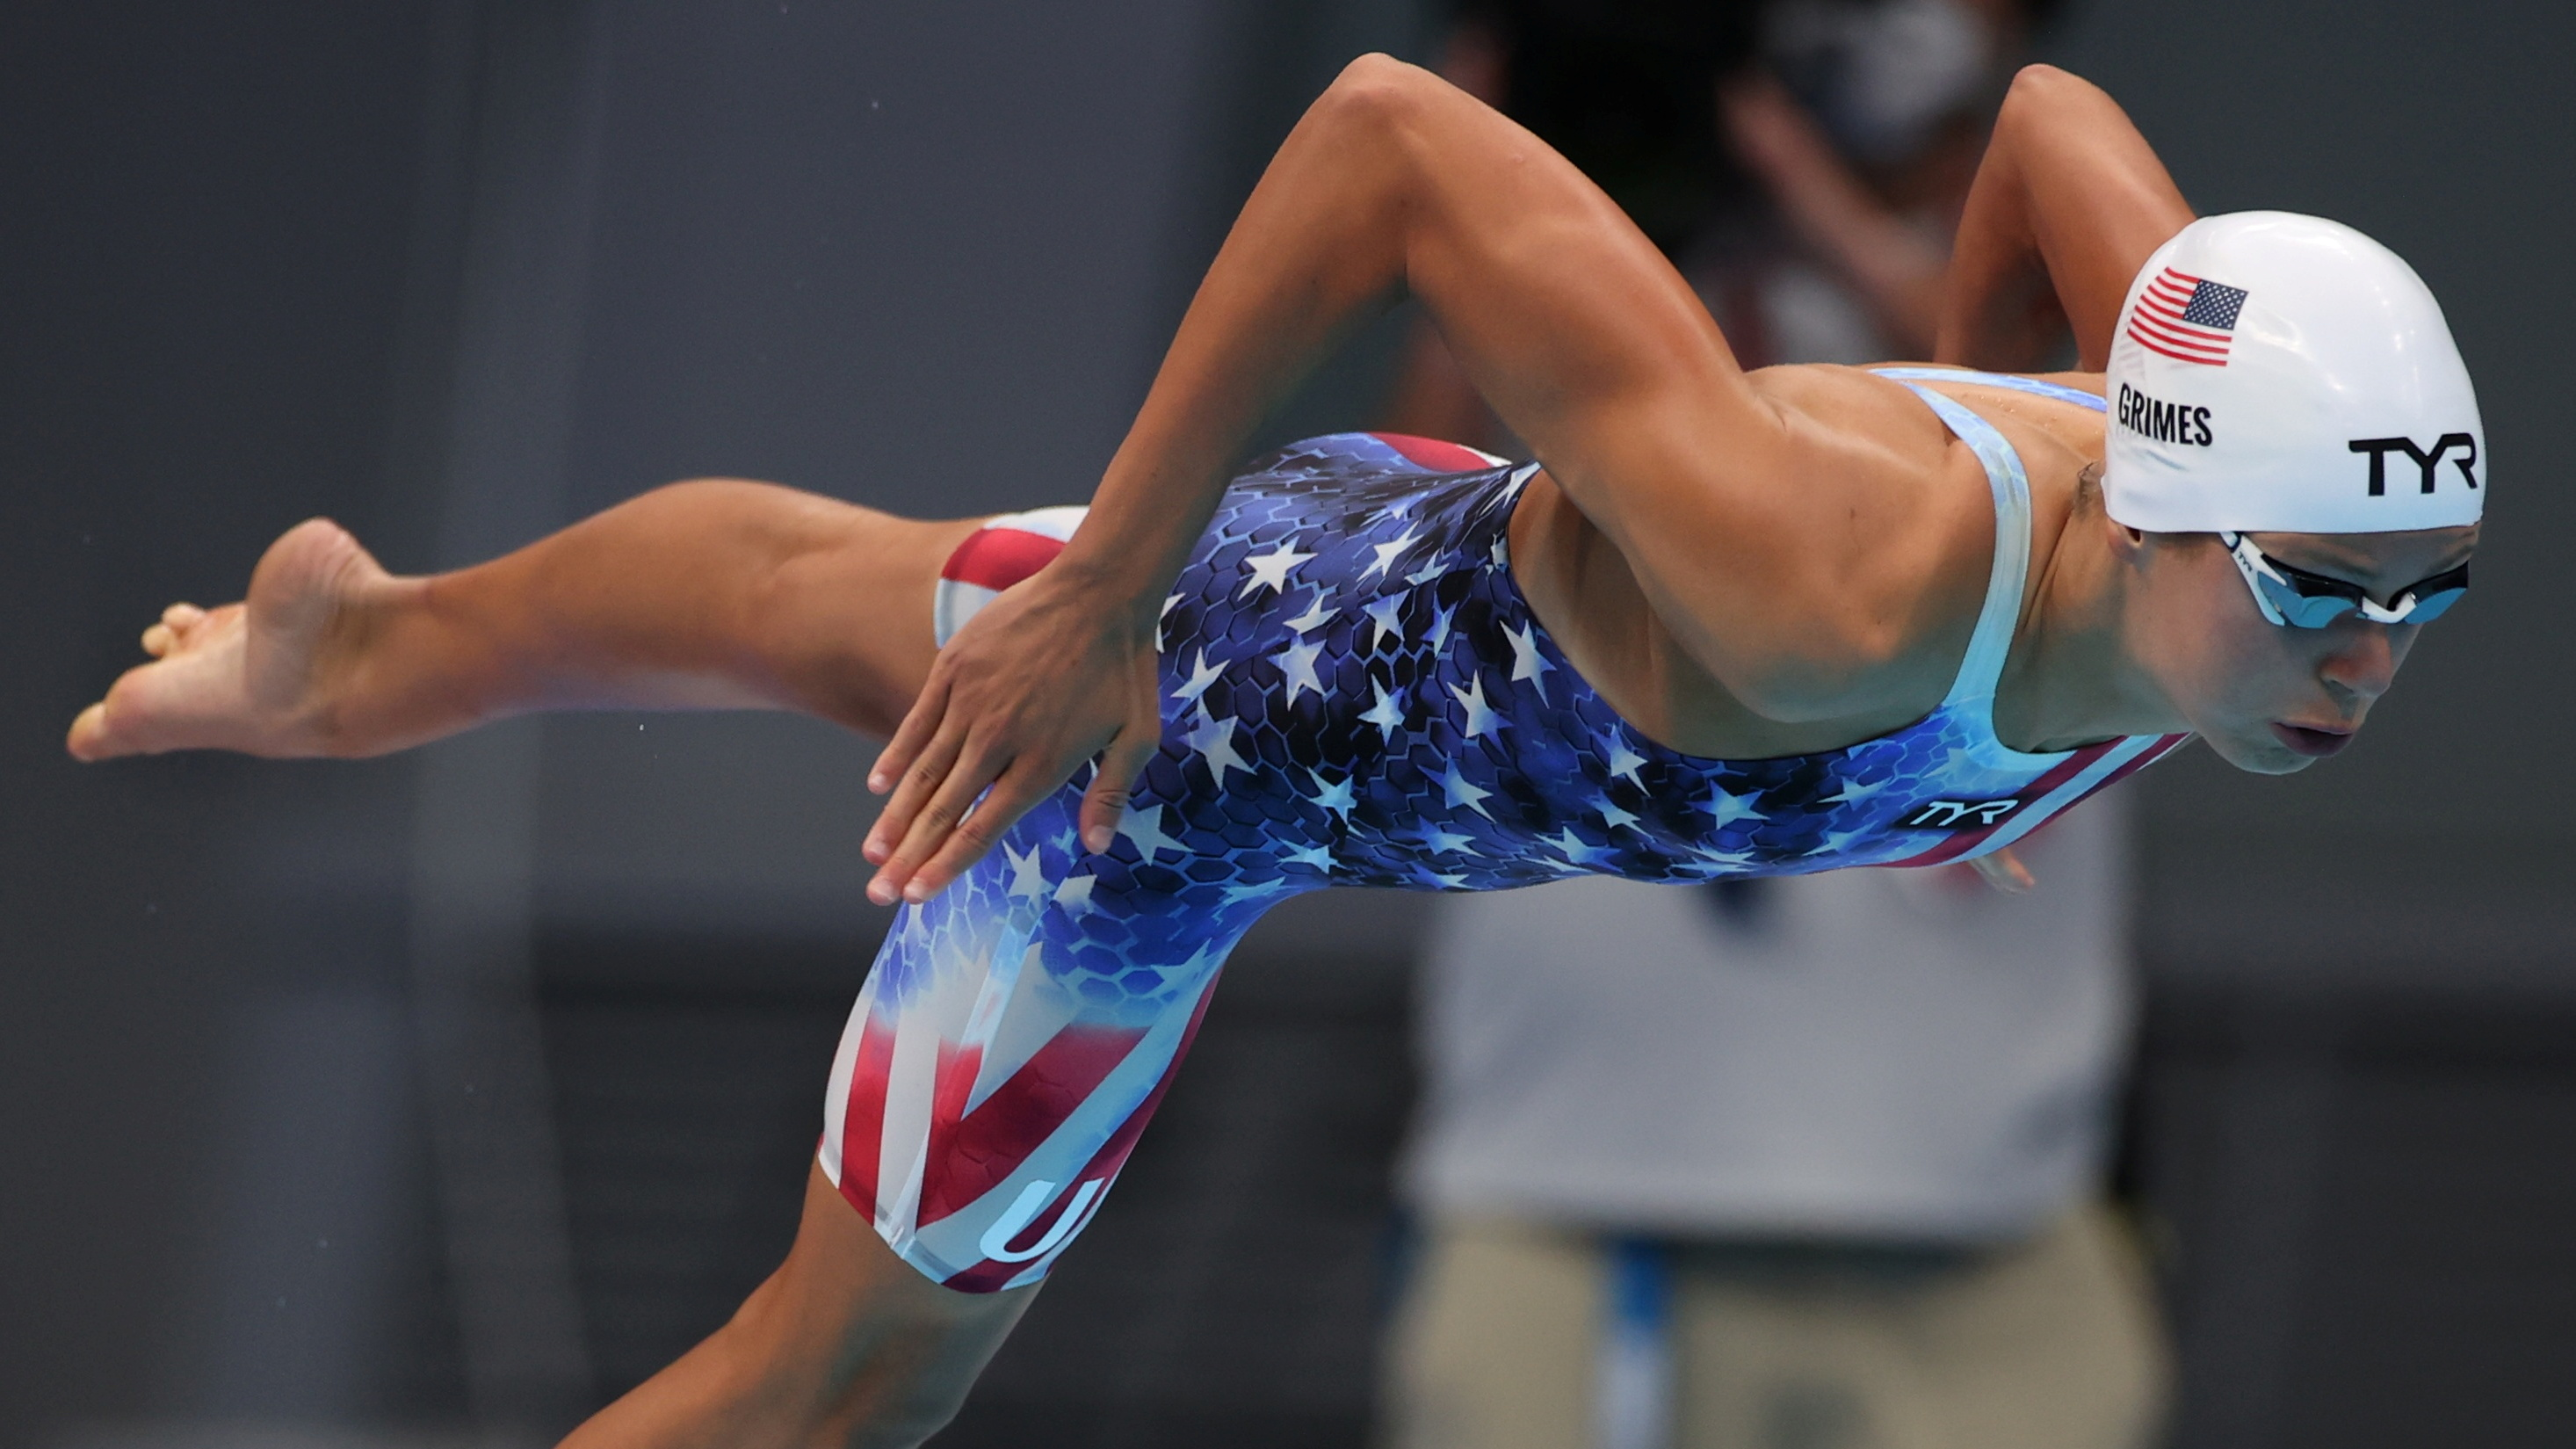 Tokyo 2020 Olympics - Swimming - Women's 800m Freestyle - Heats - Tokyo Aquatics Centre - Tokyo, Japan - July 29, 2021. Kathleen Ledecky of the United States in action REUTERS/Molly Darlington